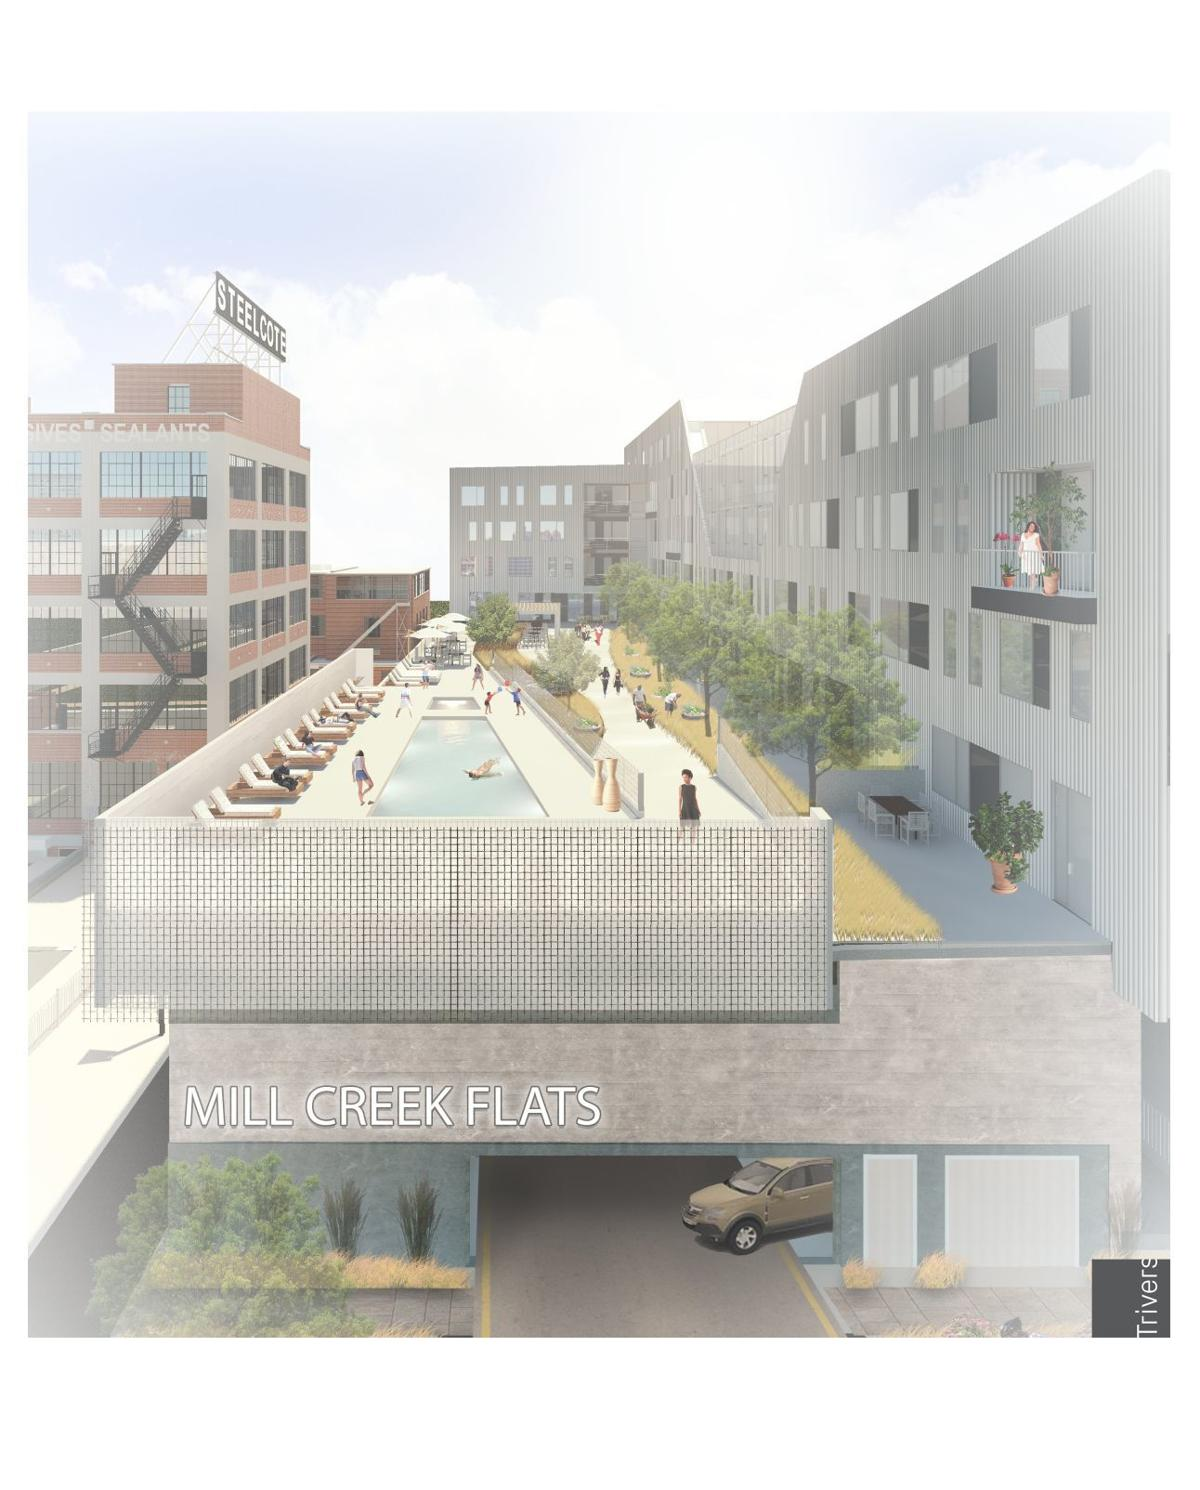 Midtown Crossing Apartments: Steelcote Developer Plans 111 More Apartments, Brewery